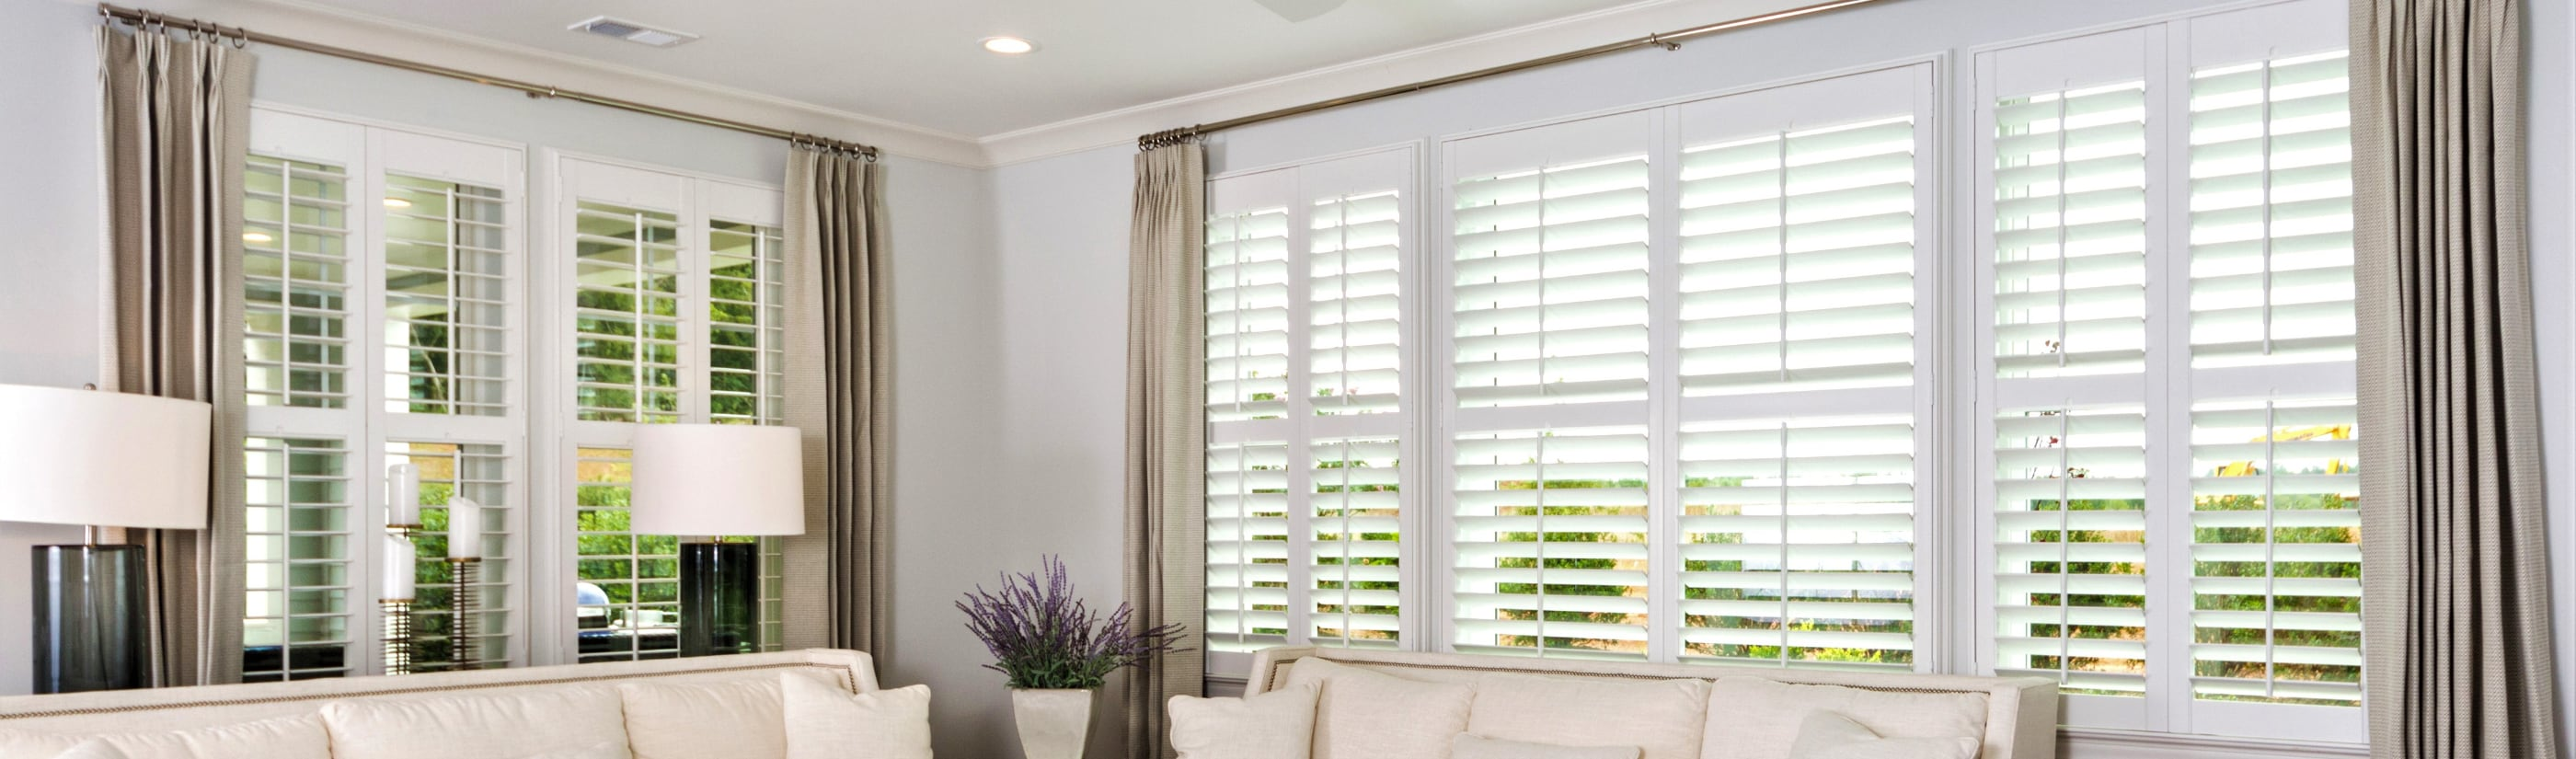 Polywood Shutters Paints In Boston